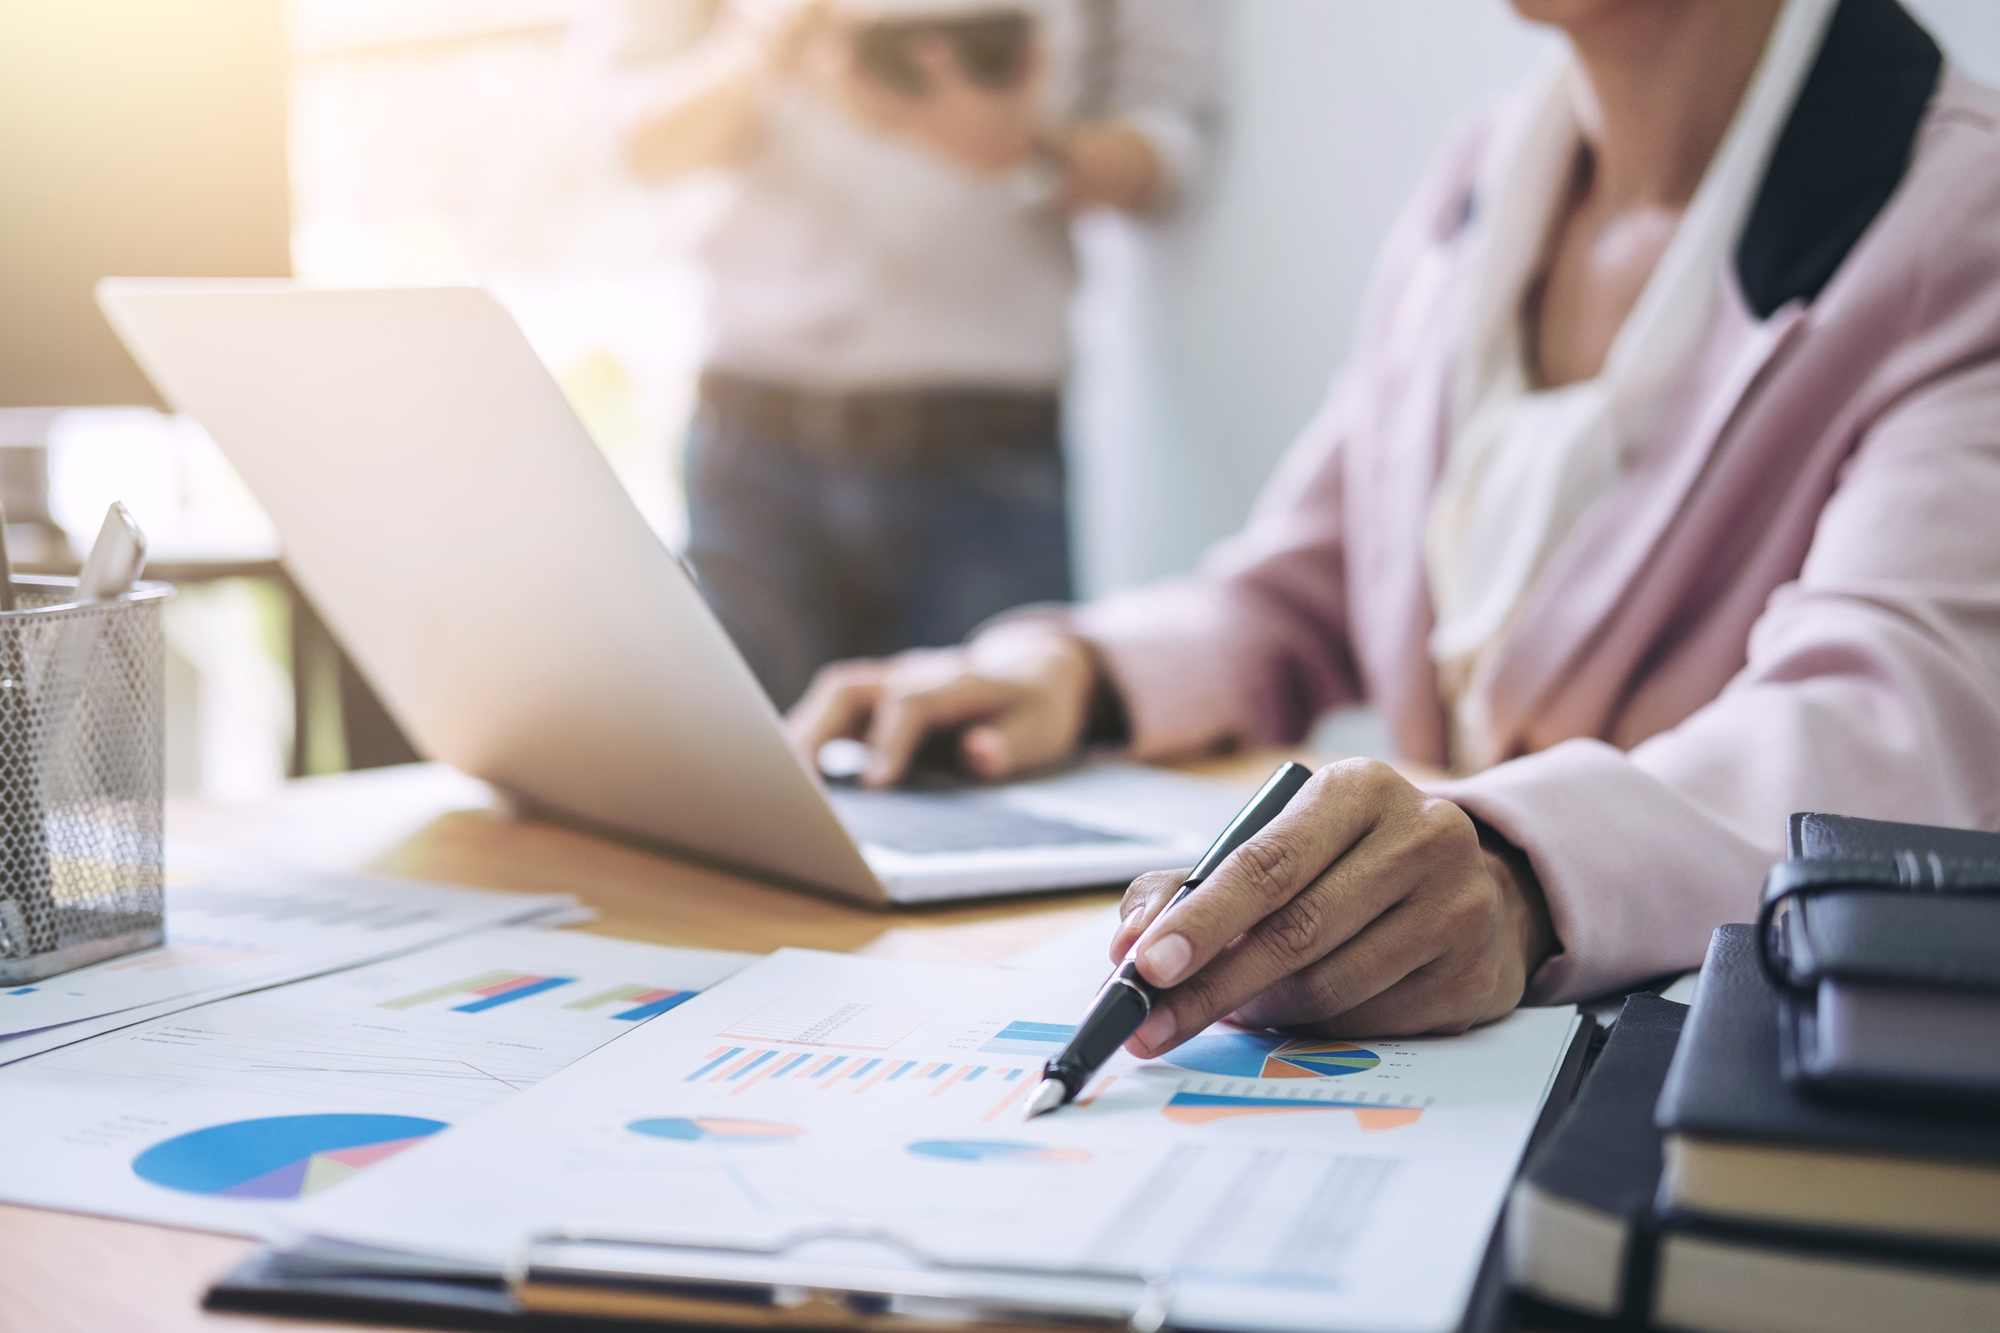 automated bookkeeping servcies near me